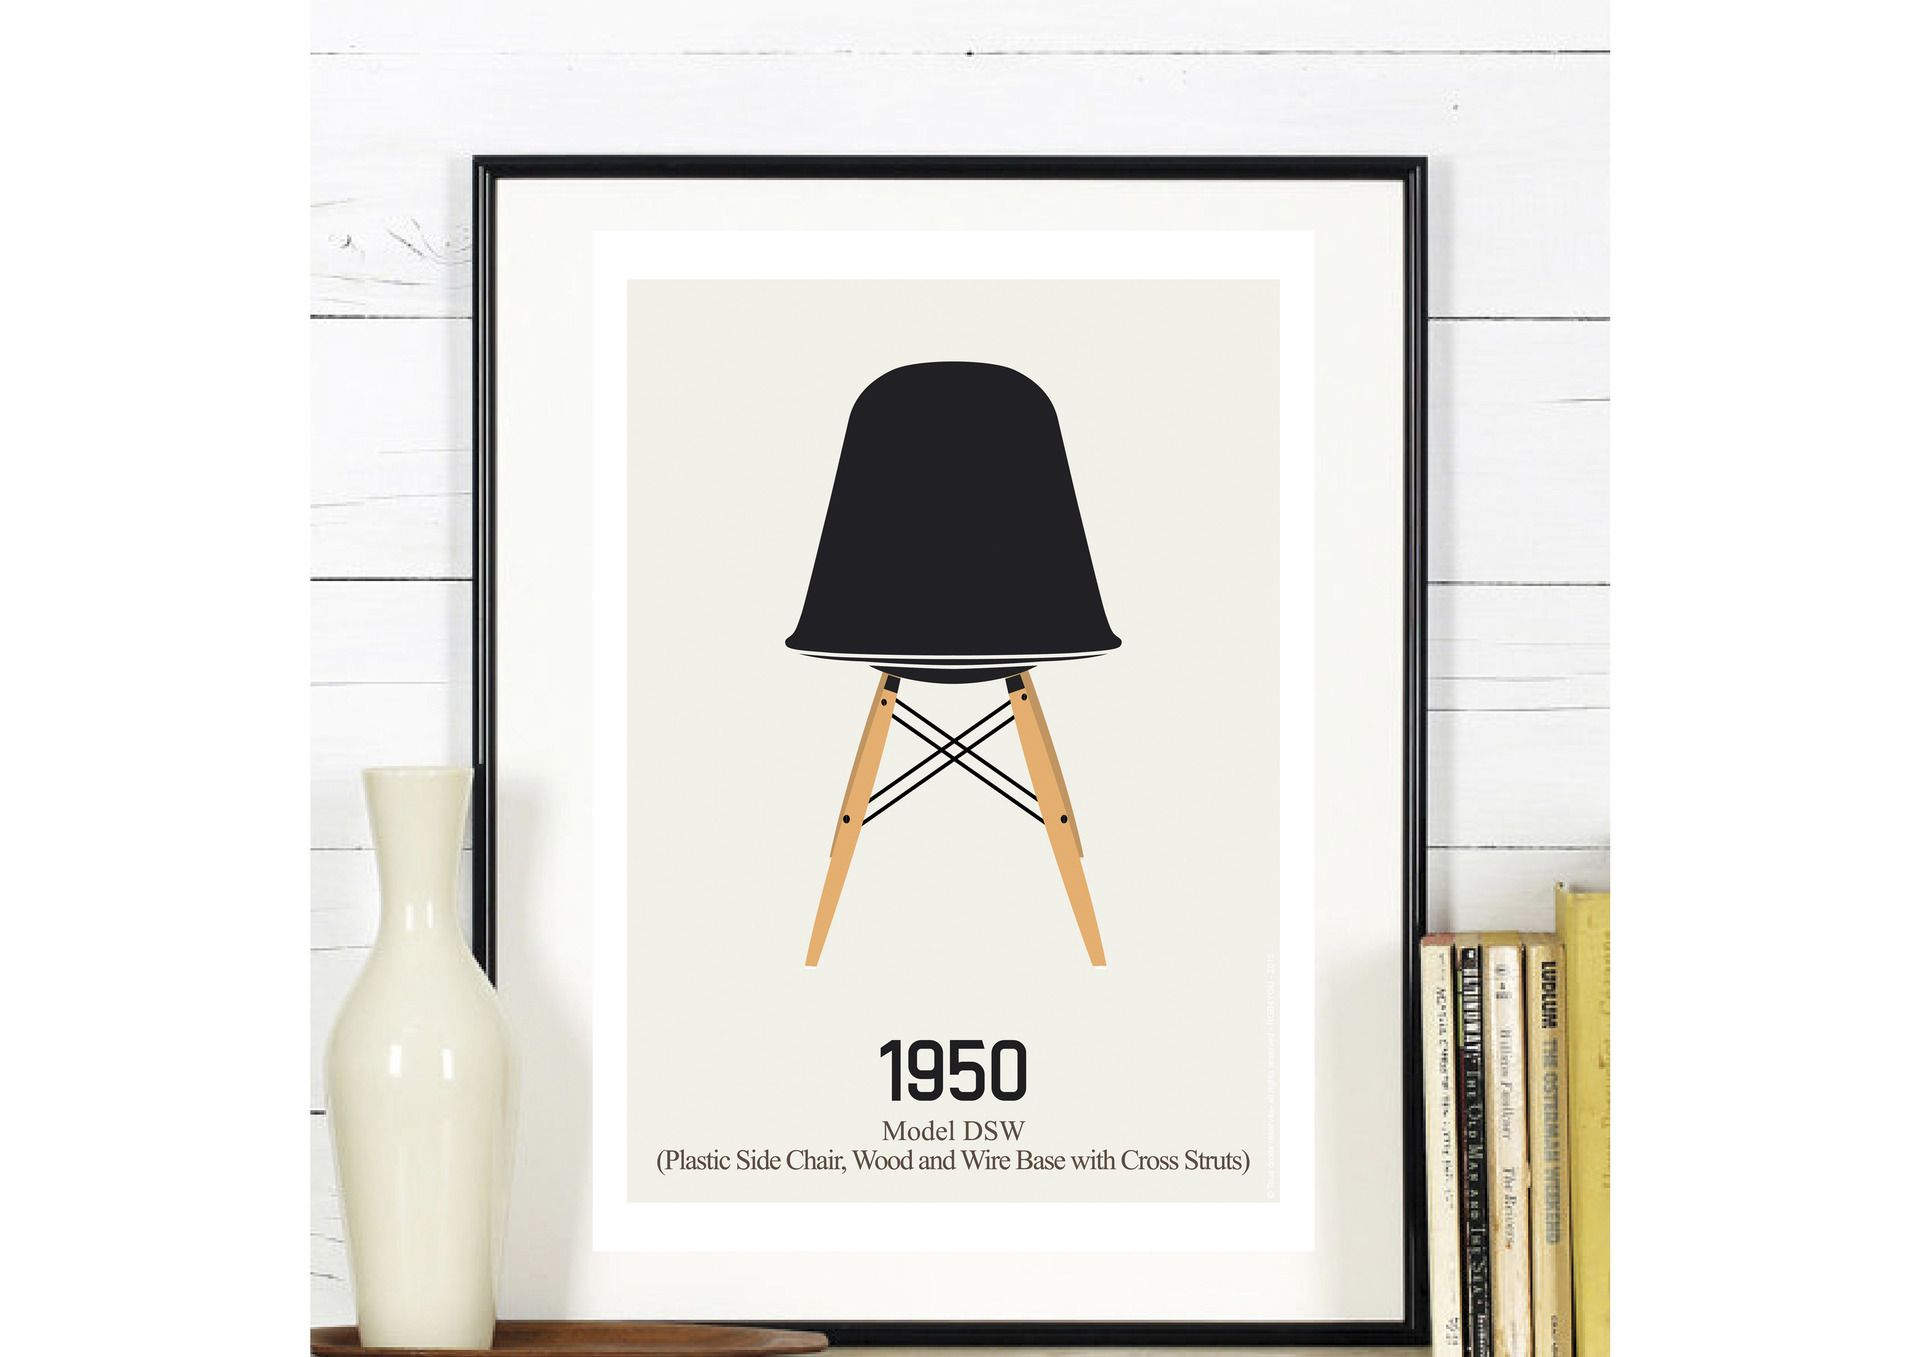 affiche design moderne chaise inspiration scandinave affiches illustrations posters par. Black Bedroom Furniture Sets. Home Design Ideas